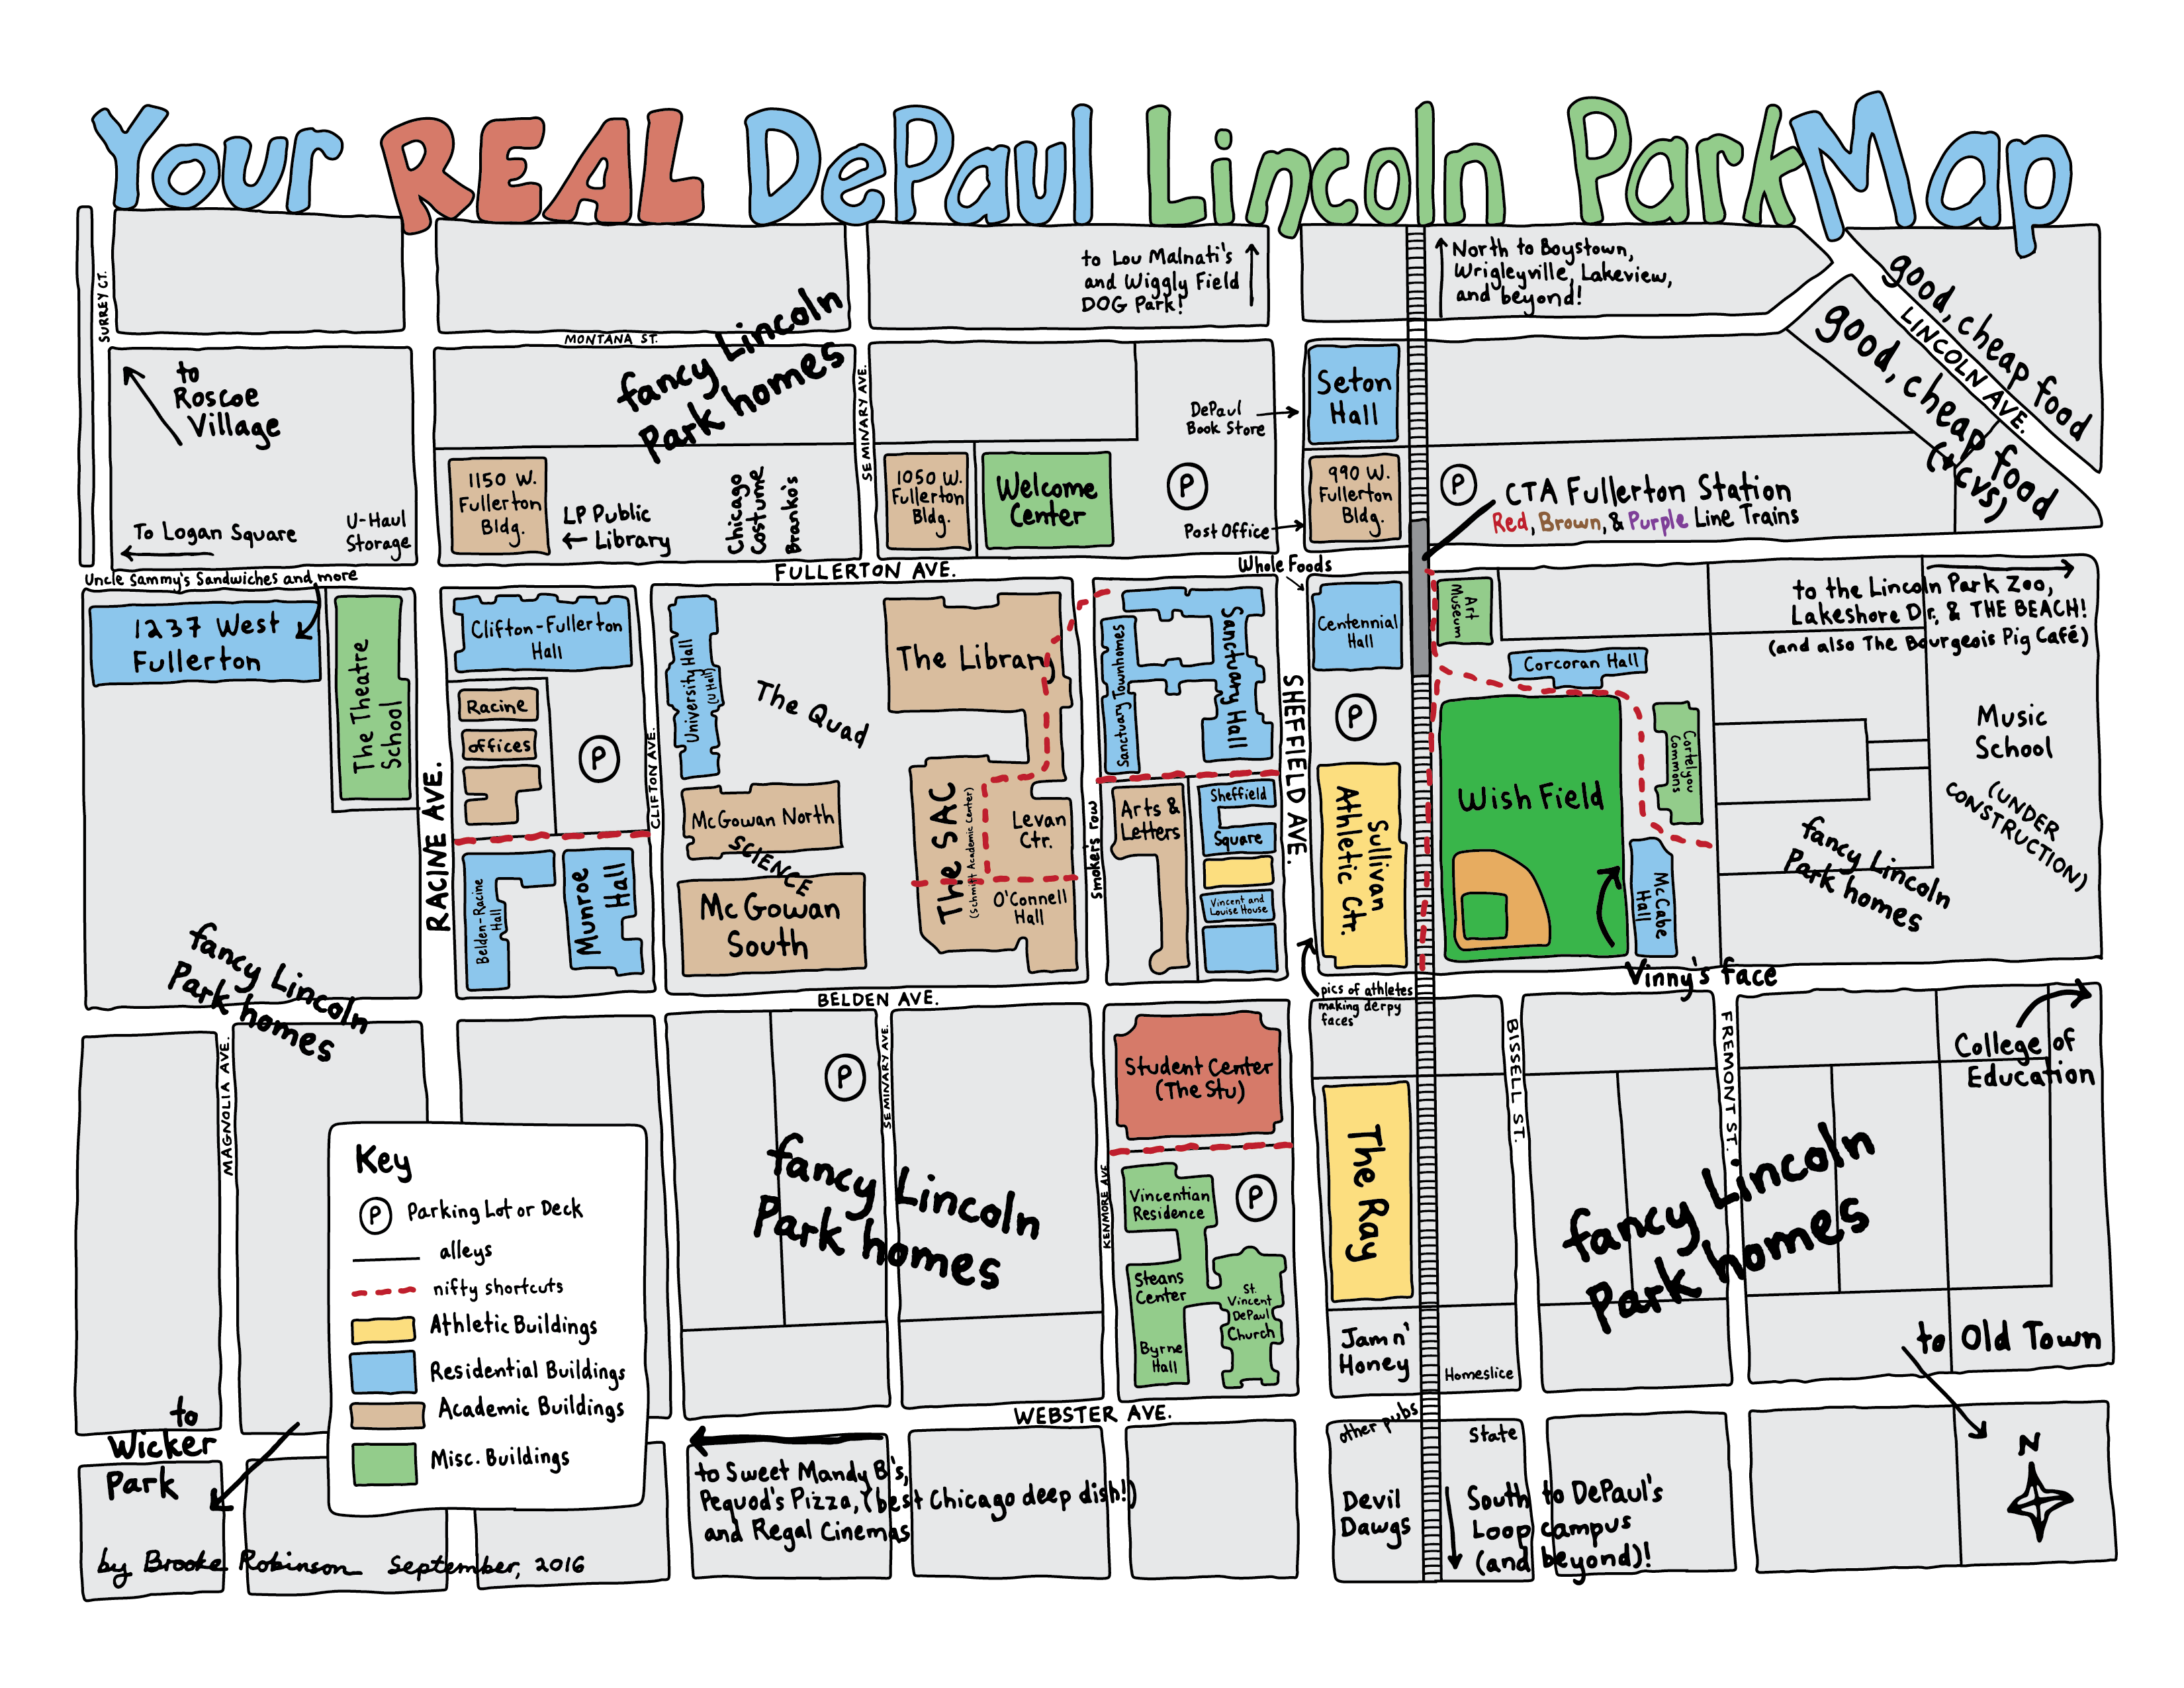 October 2016 Your Real DePaul Lincoln Park Map by Brooke Robinson